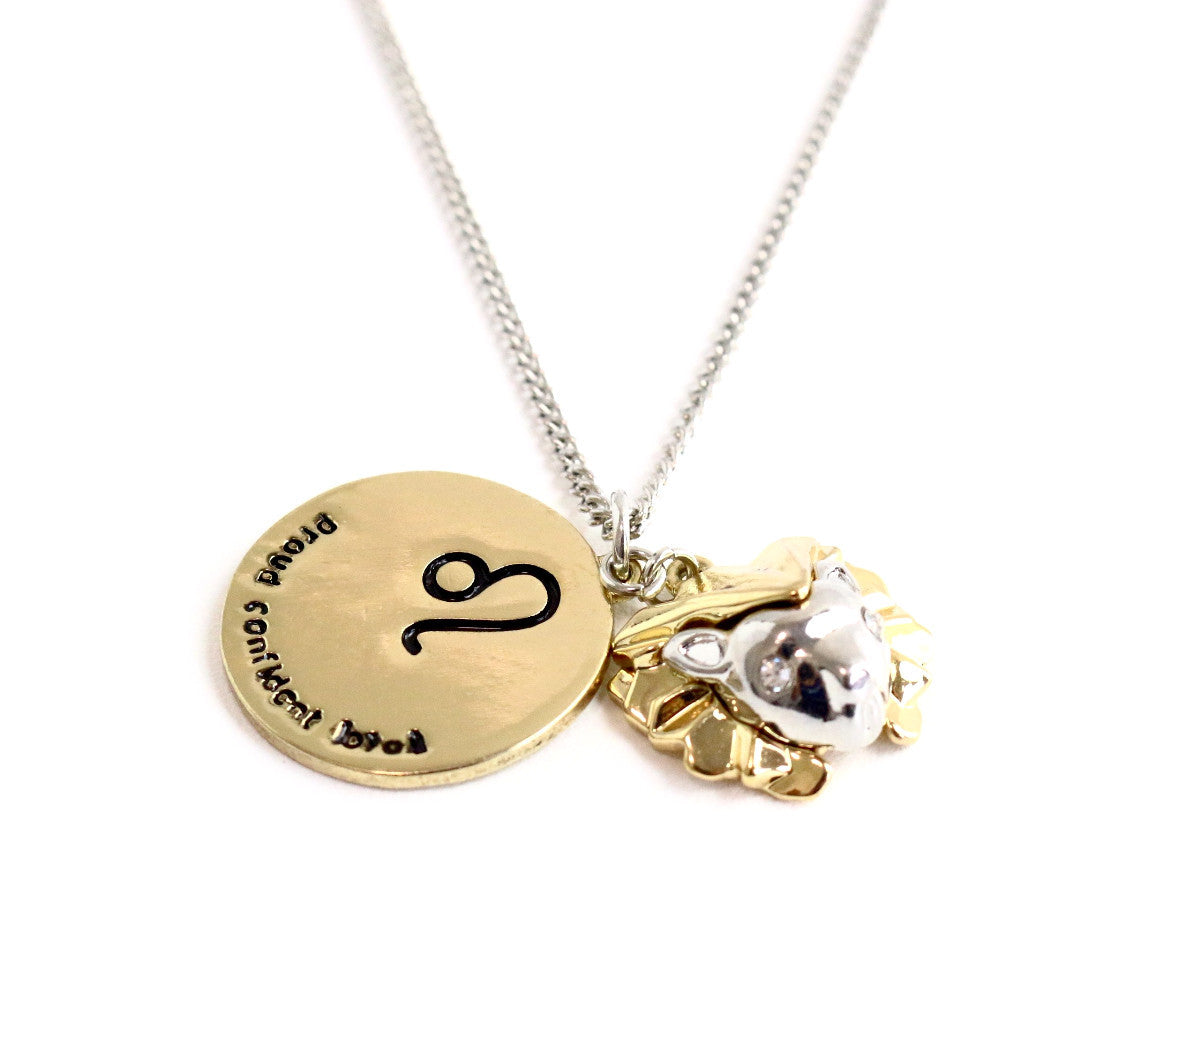 Leo Zodiac Charm Necklace